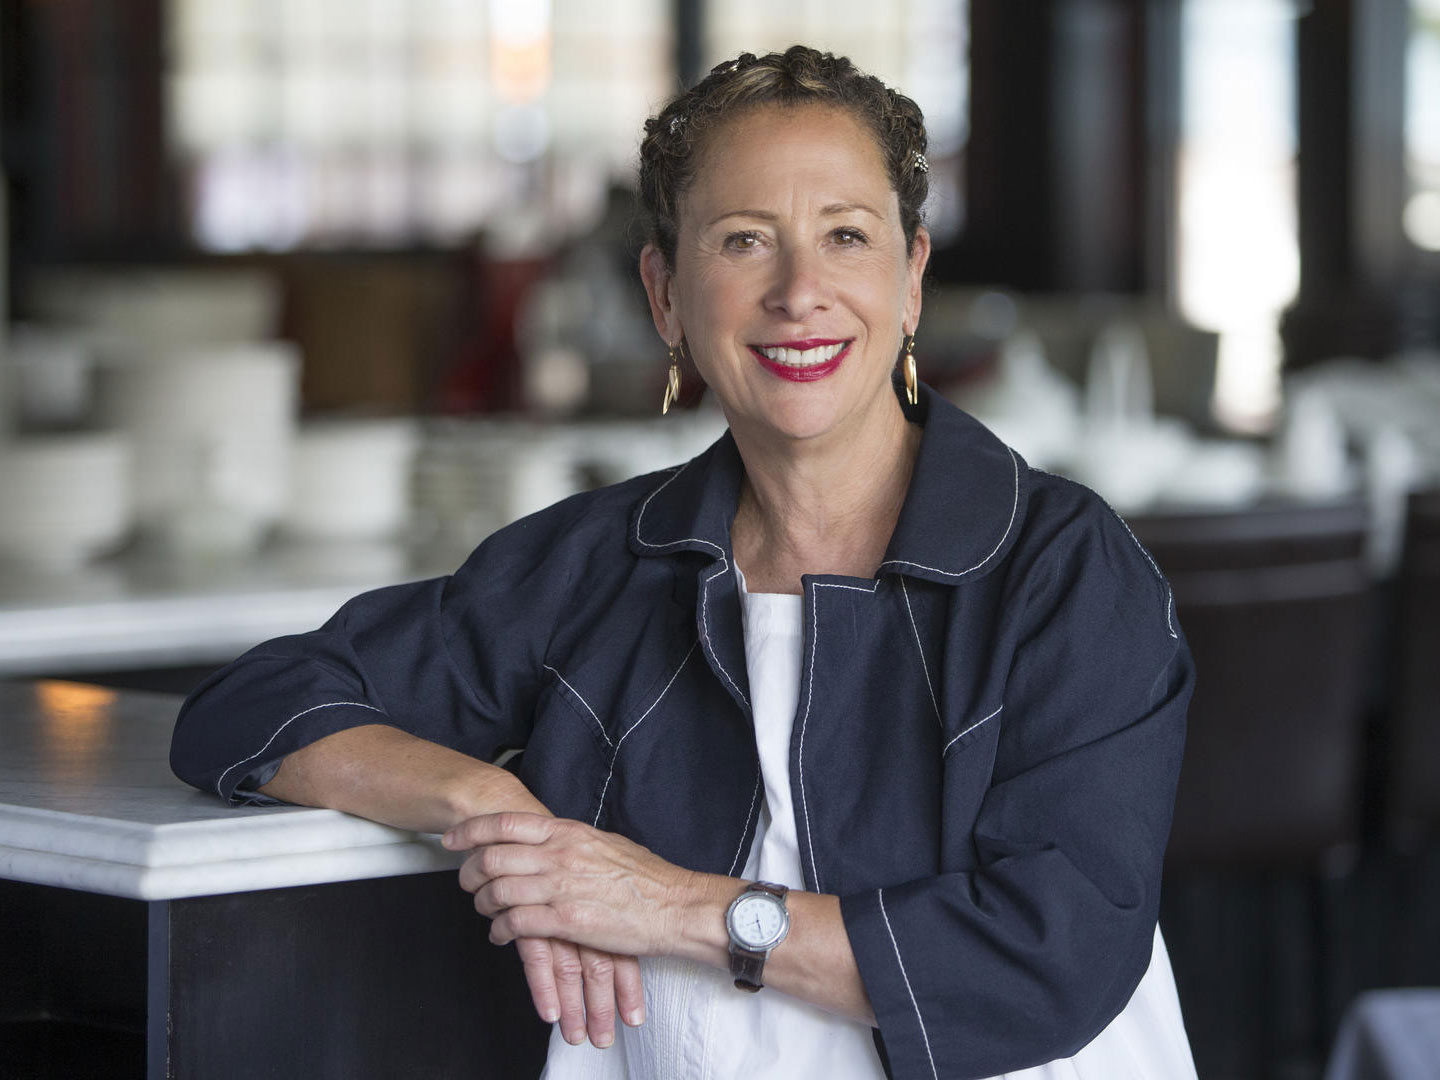 Amex Adds Five More Big-Name Chefs to Global Dining Collection